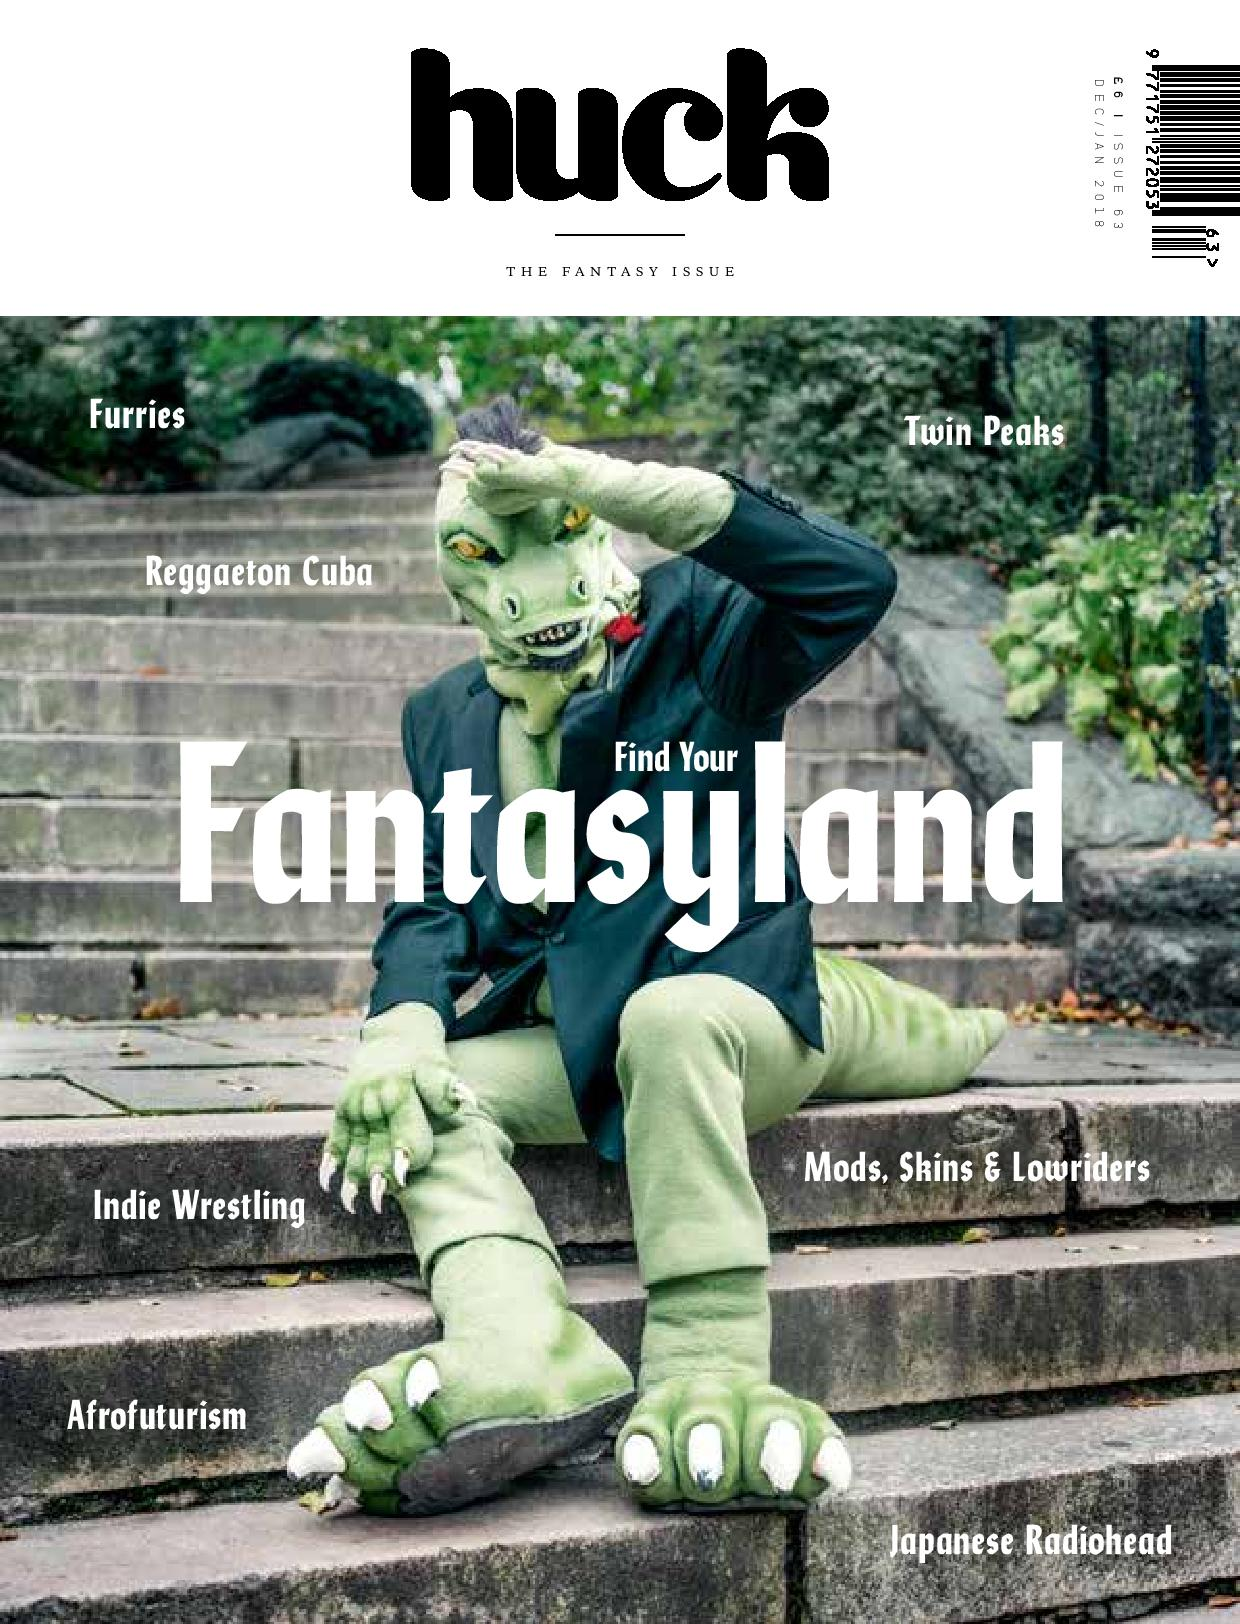 Back Issue - 63 - The Fantasy Issue